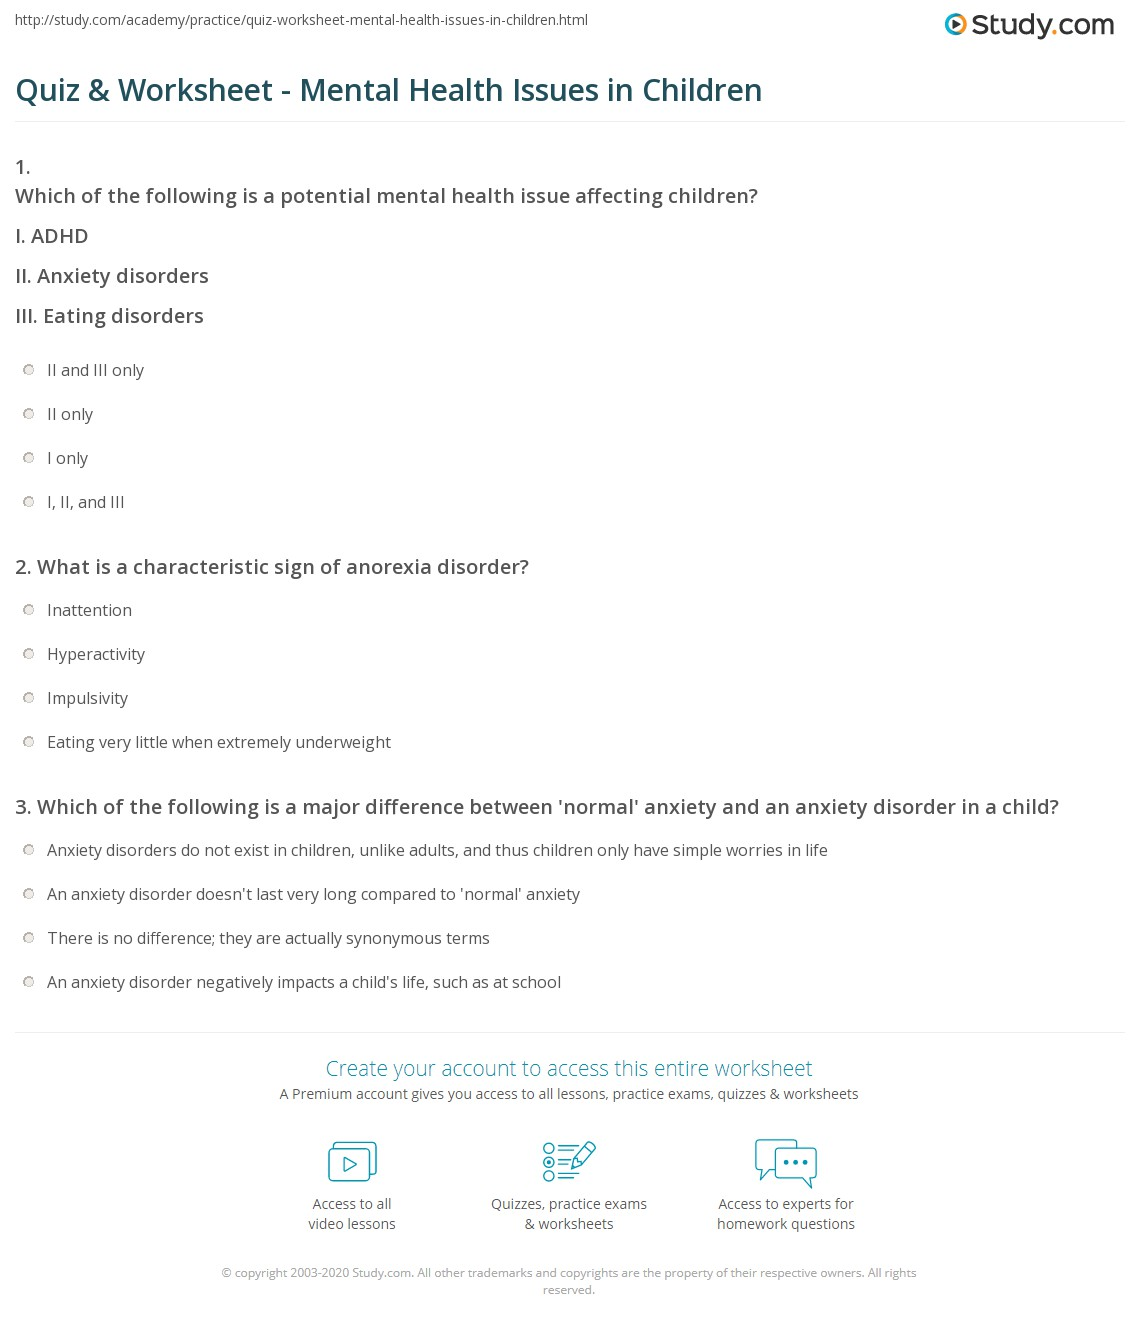 Elementary Worksheets Kindergarten Health Worksheets Activities Free likewise Quiz   Worksheet   Mental Health Issues in Children   Study together with Free Downloadable Theutic Worksheets for Children and Teens also Cbt Worksheets for Children 32934 the Best Cbt Worksheets Activities moreover Printable Mental Health Worksheets   Mychaume     Worksheets likewise 779 Best counseling   worksheets   printables images in 2019 moreover  likewise Kids Free Printable Health Worksheets For Middle On Mental in addition Tools  Worksheets  Behavior Charts  ADHD together with 25 CBT Techniques and Worksheets for Cognitive Behavioral Therapy further  furthermore Tools  Worksheets  Behavior Charts  ADHD together with Top 10 CBT Worksheets Websites besides Free Downloadable Theutic Worksheets for Children and Teens furthermore 28 Therapy Worksheets for Teens  Adults  and Couples   PDFs furthermore . on mental health worksheets for children